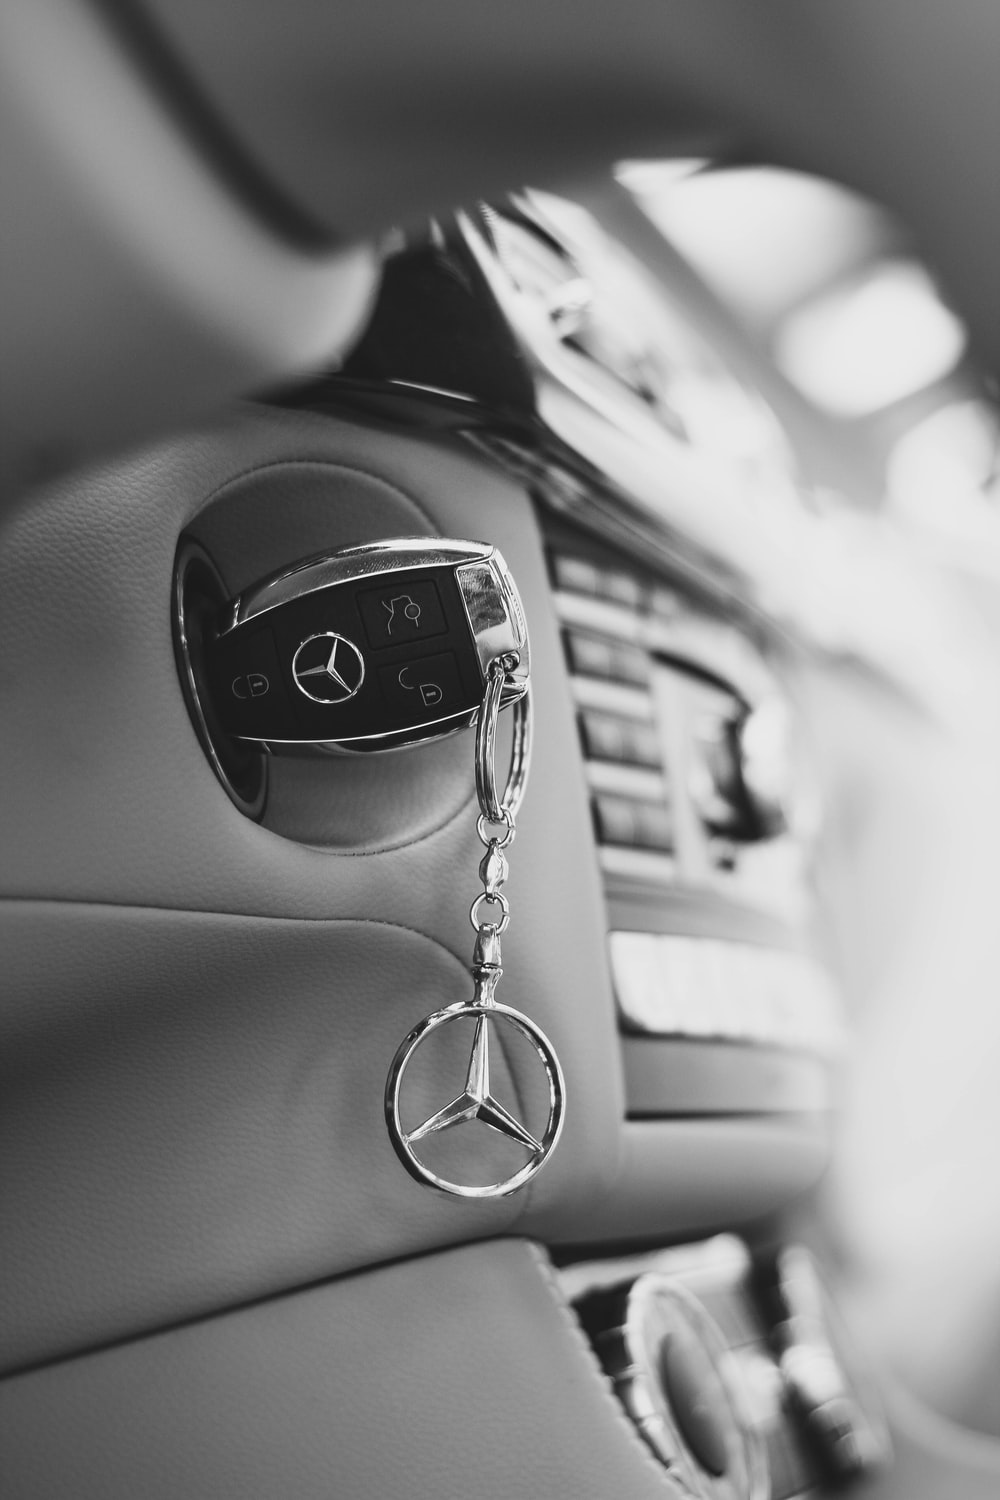 500 Keychain Pictures Hd Download Free Images On Unsplash